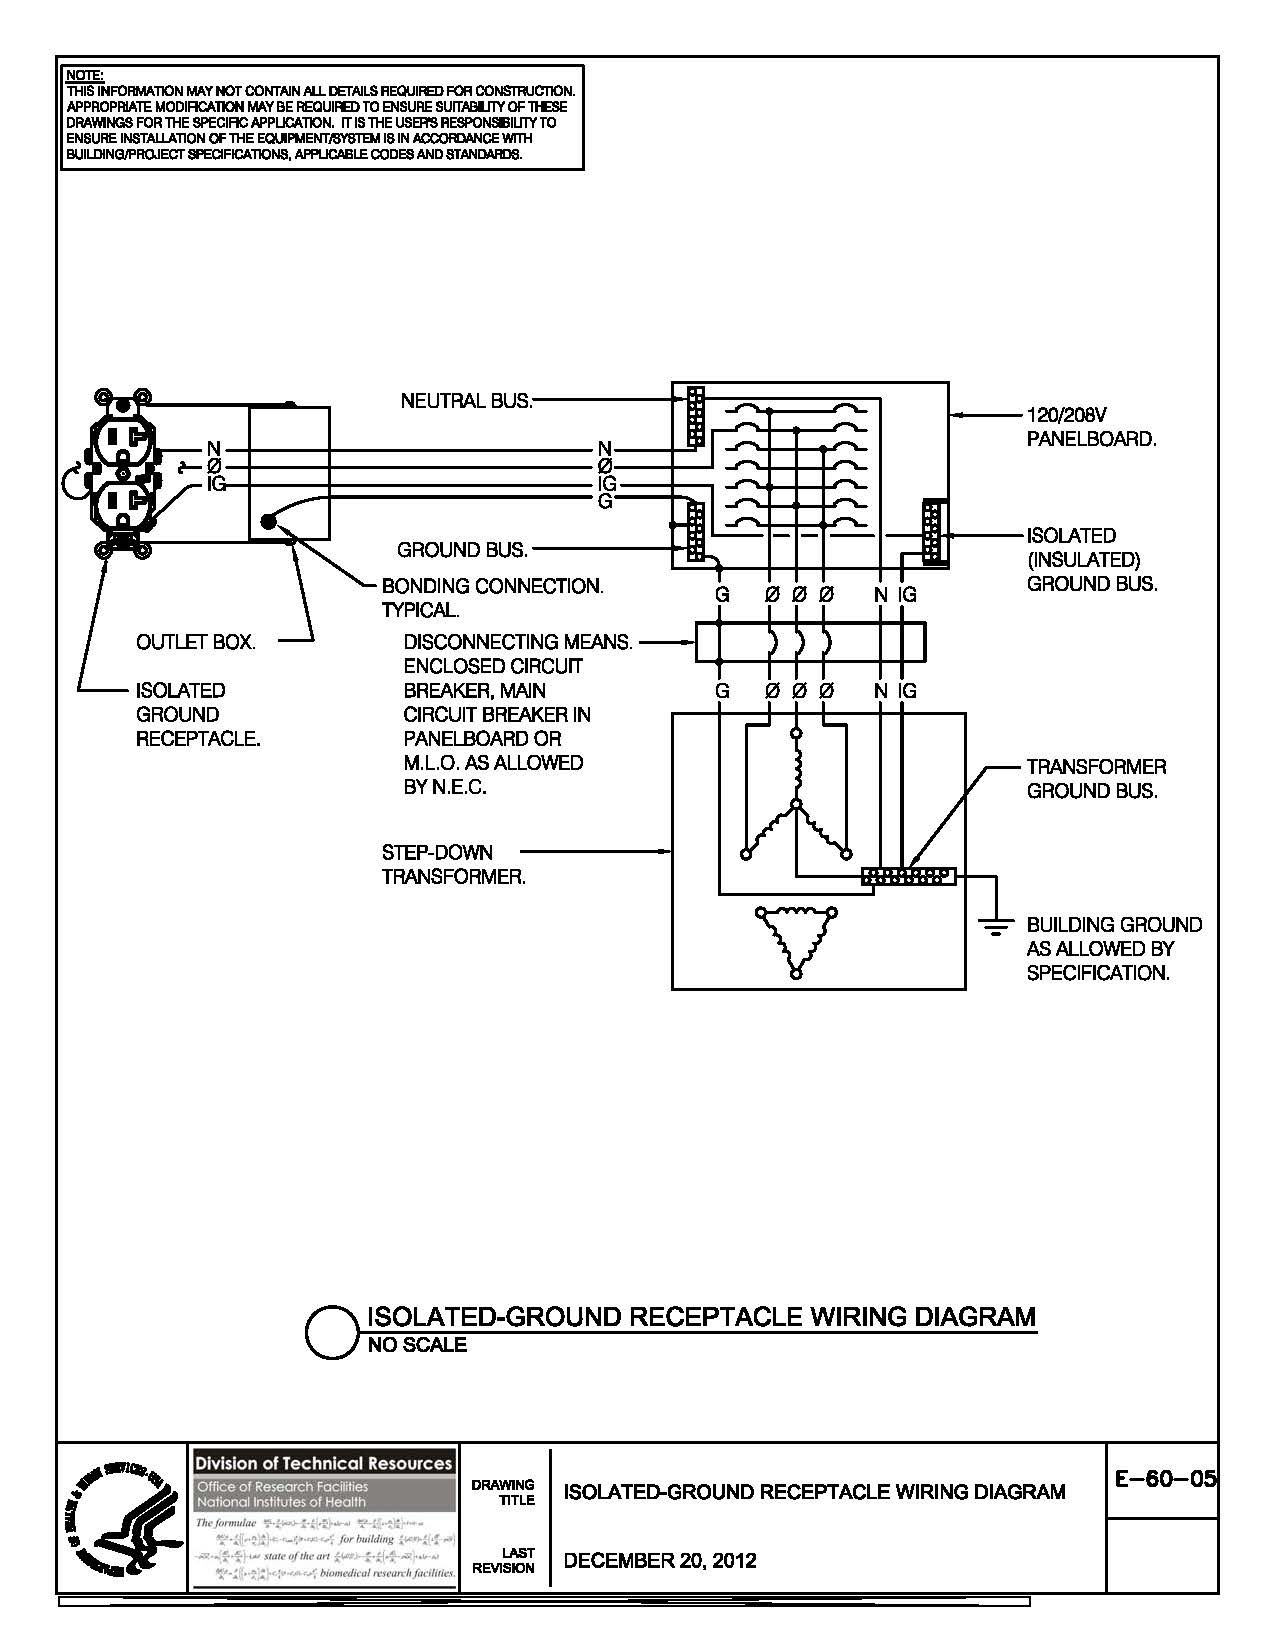 light curtain wiring diagram Download-wiring diagrams for light curtains best safety mat wiring diagram beautiful wiring diagram for trailer of wiring diagrams for light curtains 19-m